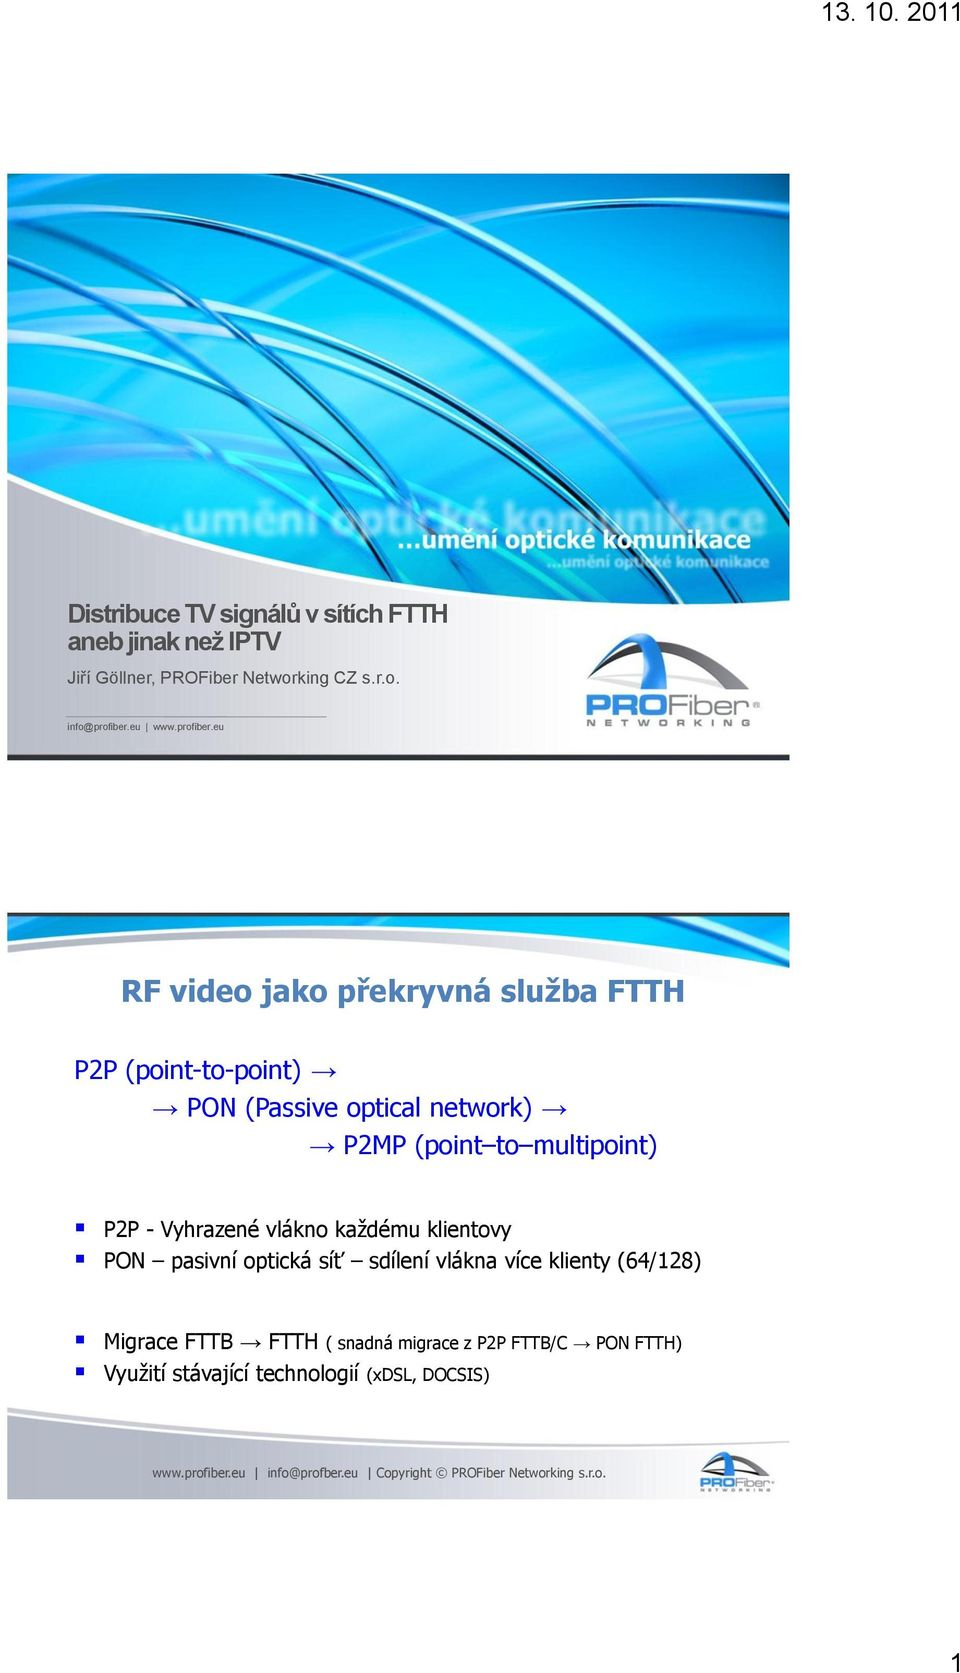 eu RF video jako překryvná služba FTTH P2P (point-to-point) PON (Passive optical network) P2MP (point to